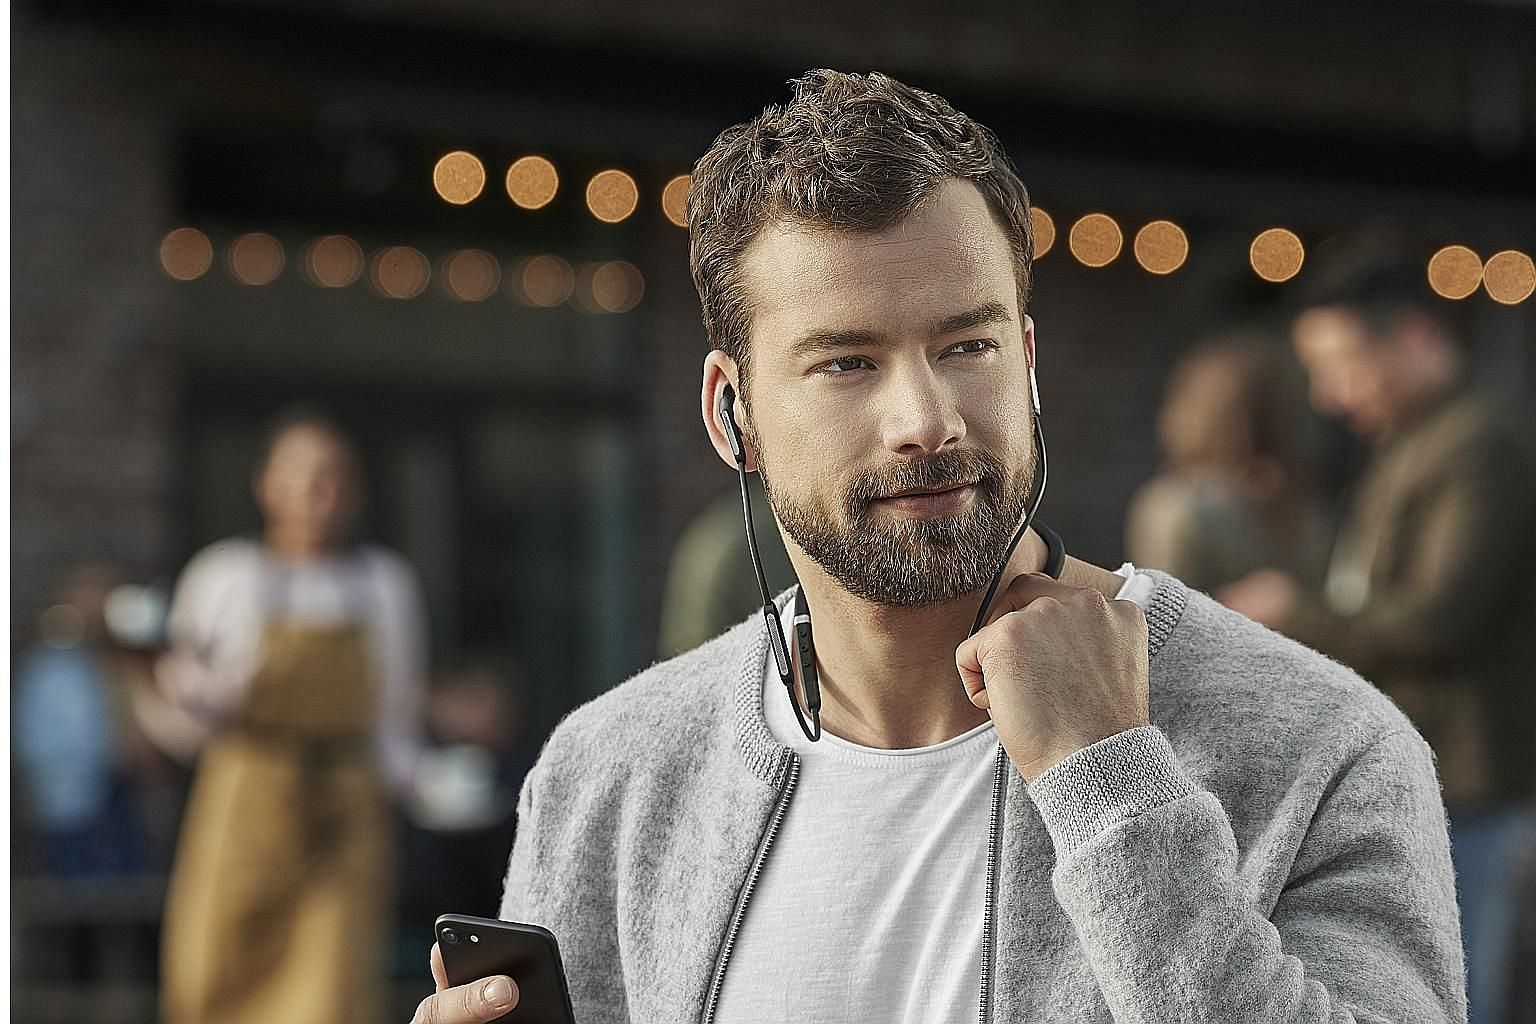 The Elite 65e can be paired with Jabra's Sound+ app for ease of use and offers up to 13 hours of battery life with active noise cancelling off.